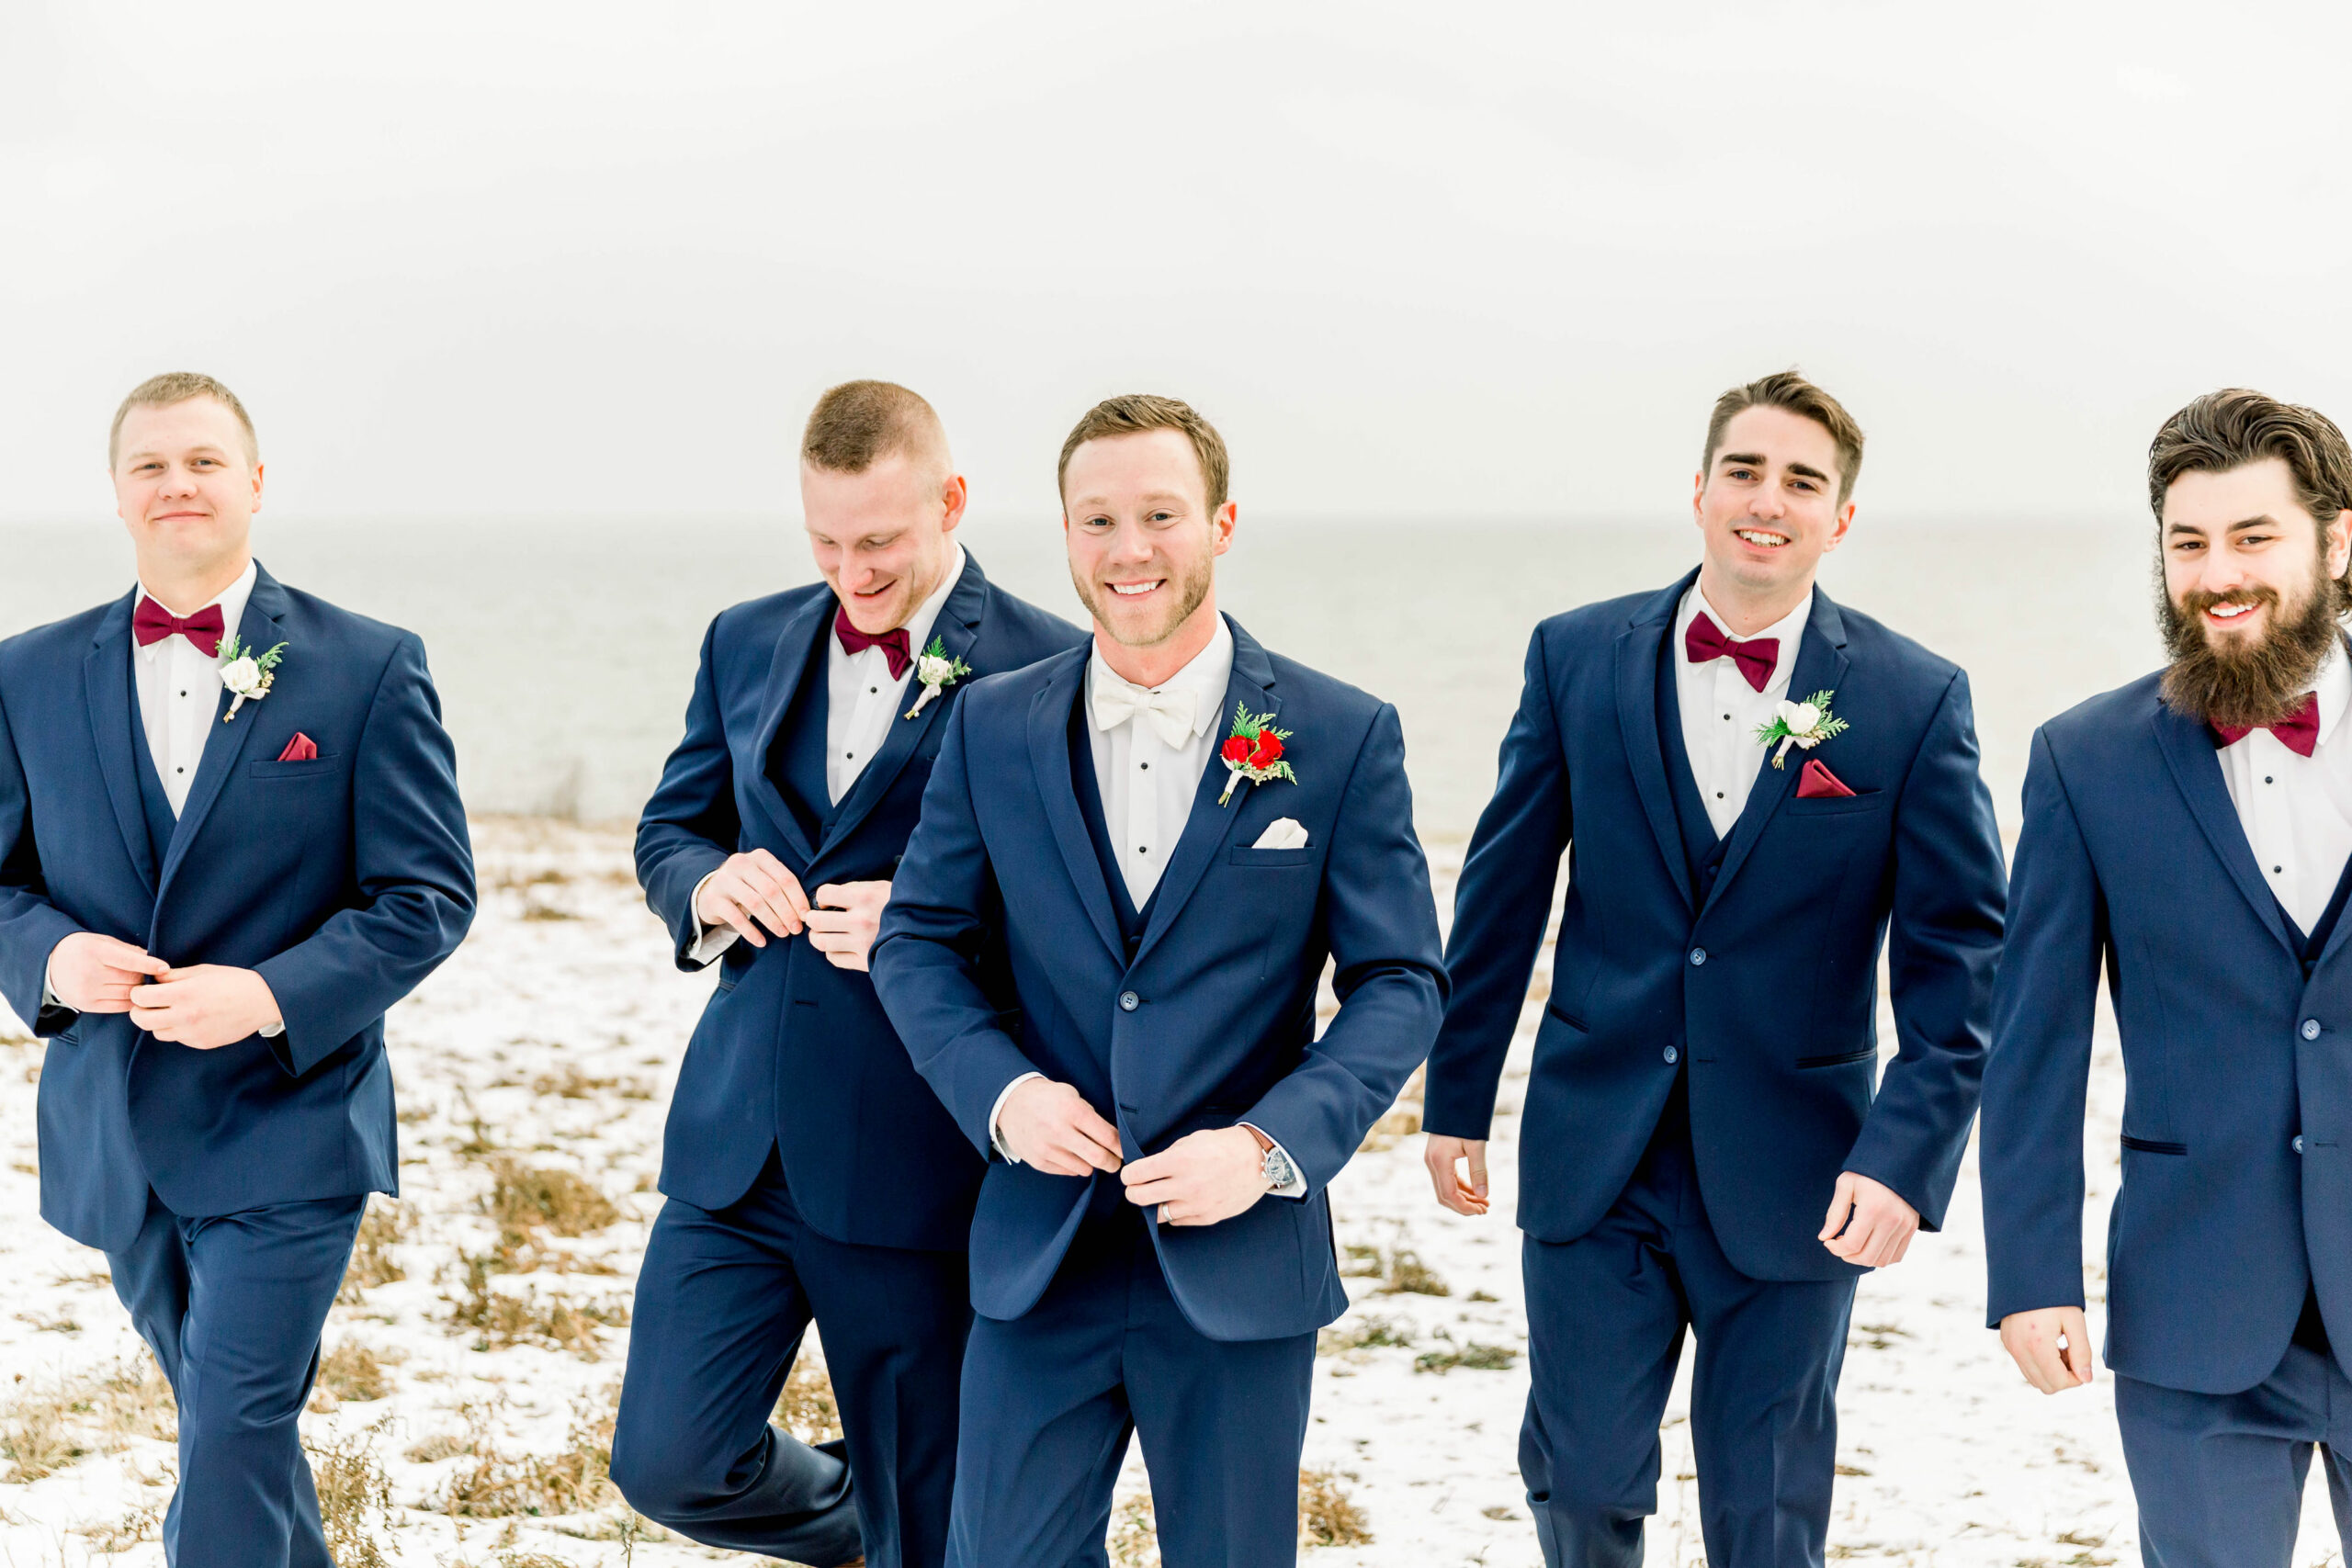 groom and groomsmen walking towards the camera in a field covered in snow. Men wearing navy blue suits with matching vests and red cranberry colored bow ties.